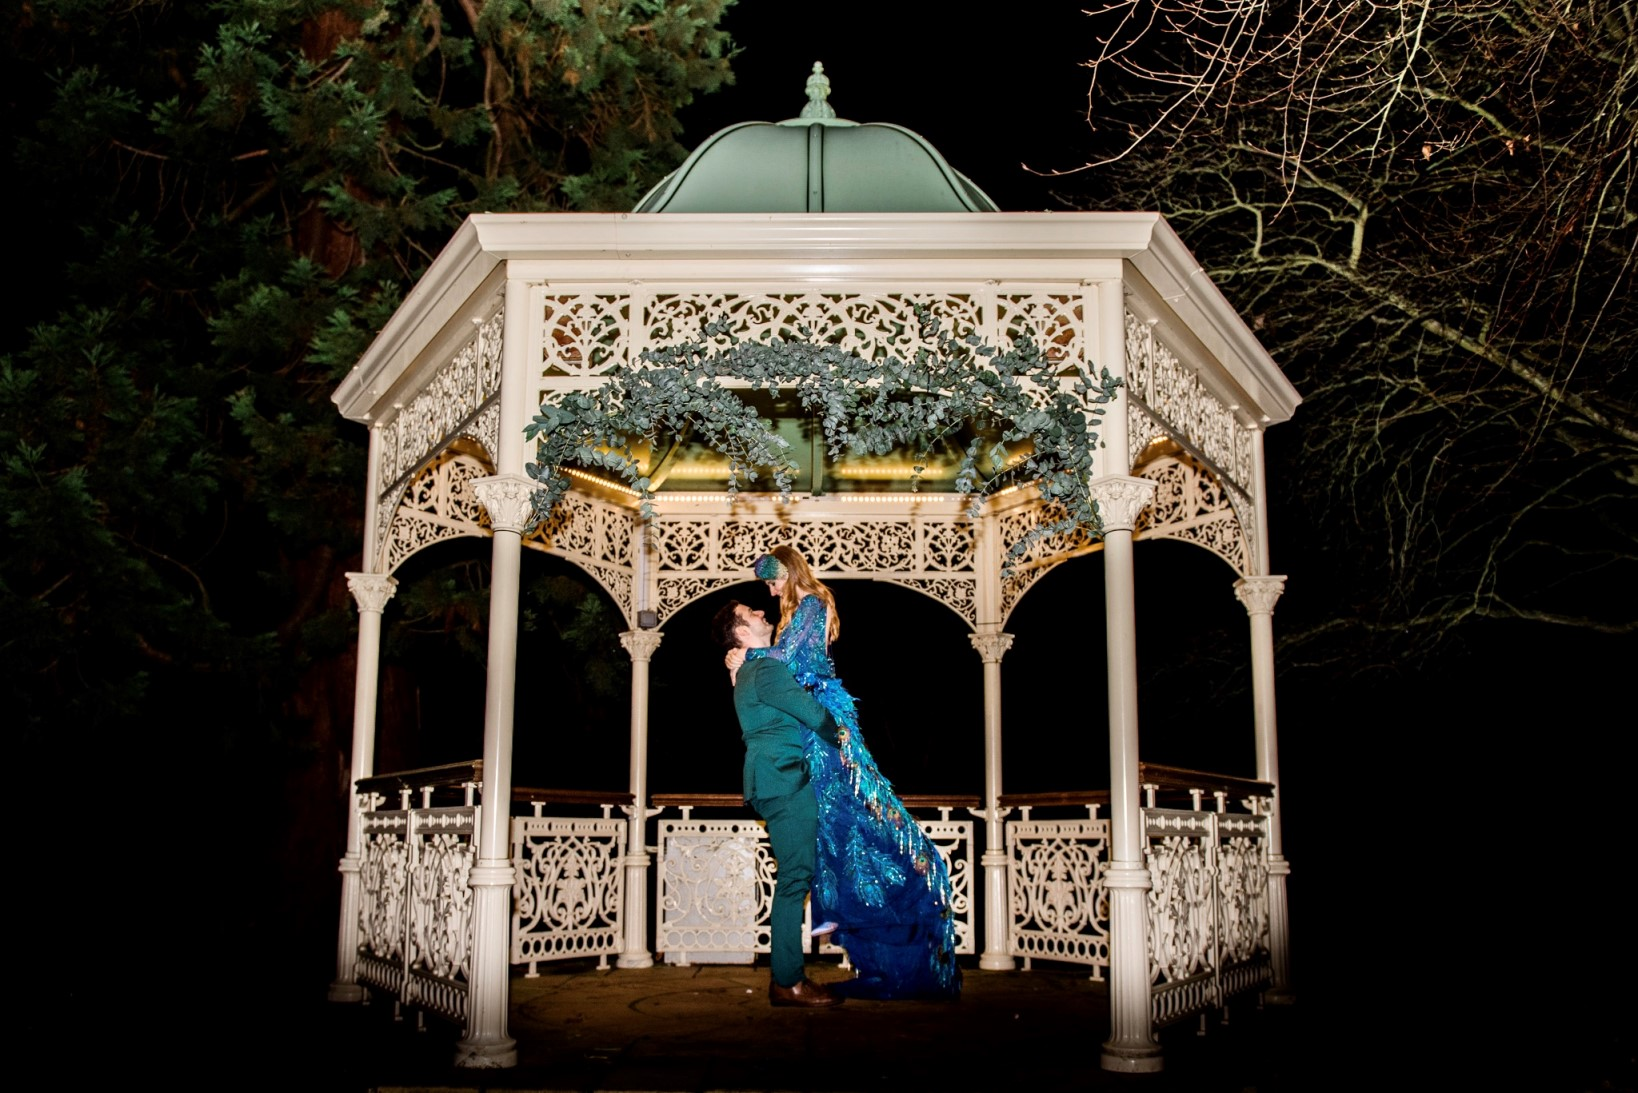 peacock wedding- unconventional wedding- unique wedding venue- peacock wedding dress- unique wedding styling- alternative wedding